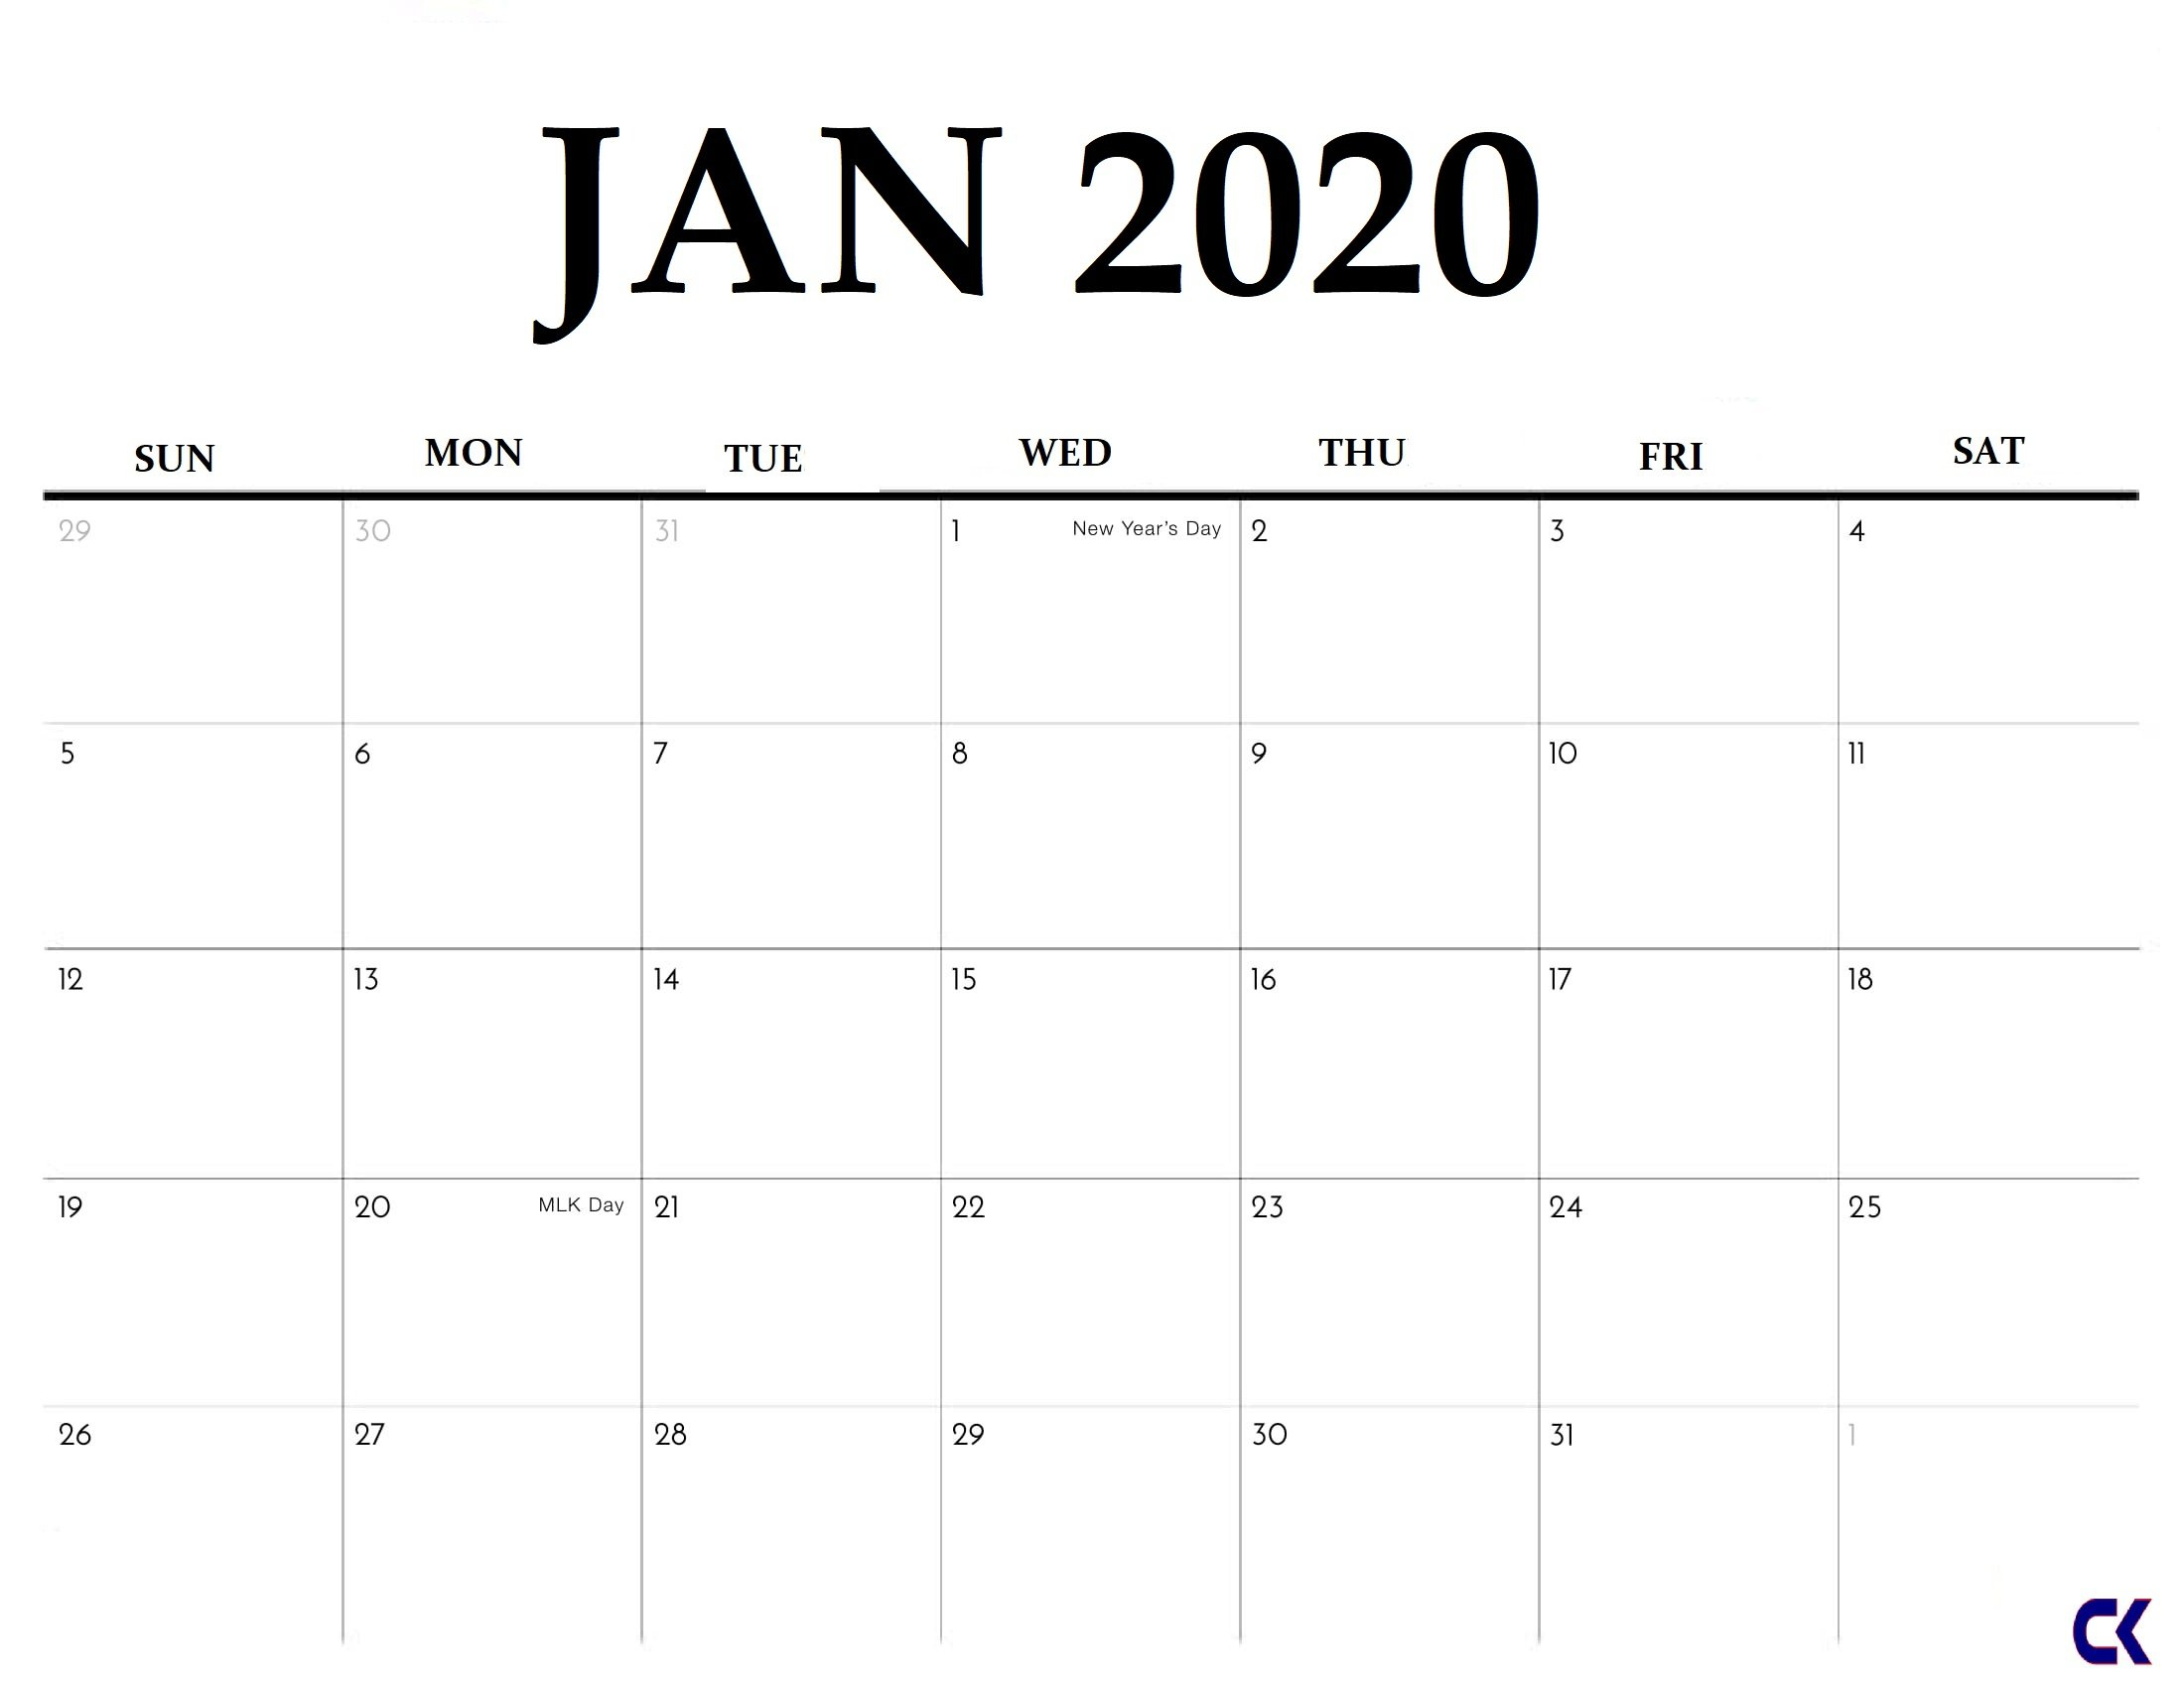 Free Print 2020 Calendars Without Downloading   Calendar Free Online Printable Calendar Without Downloading